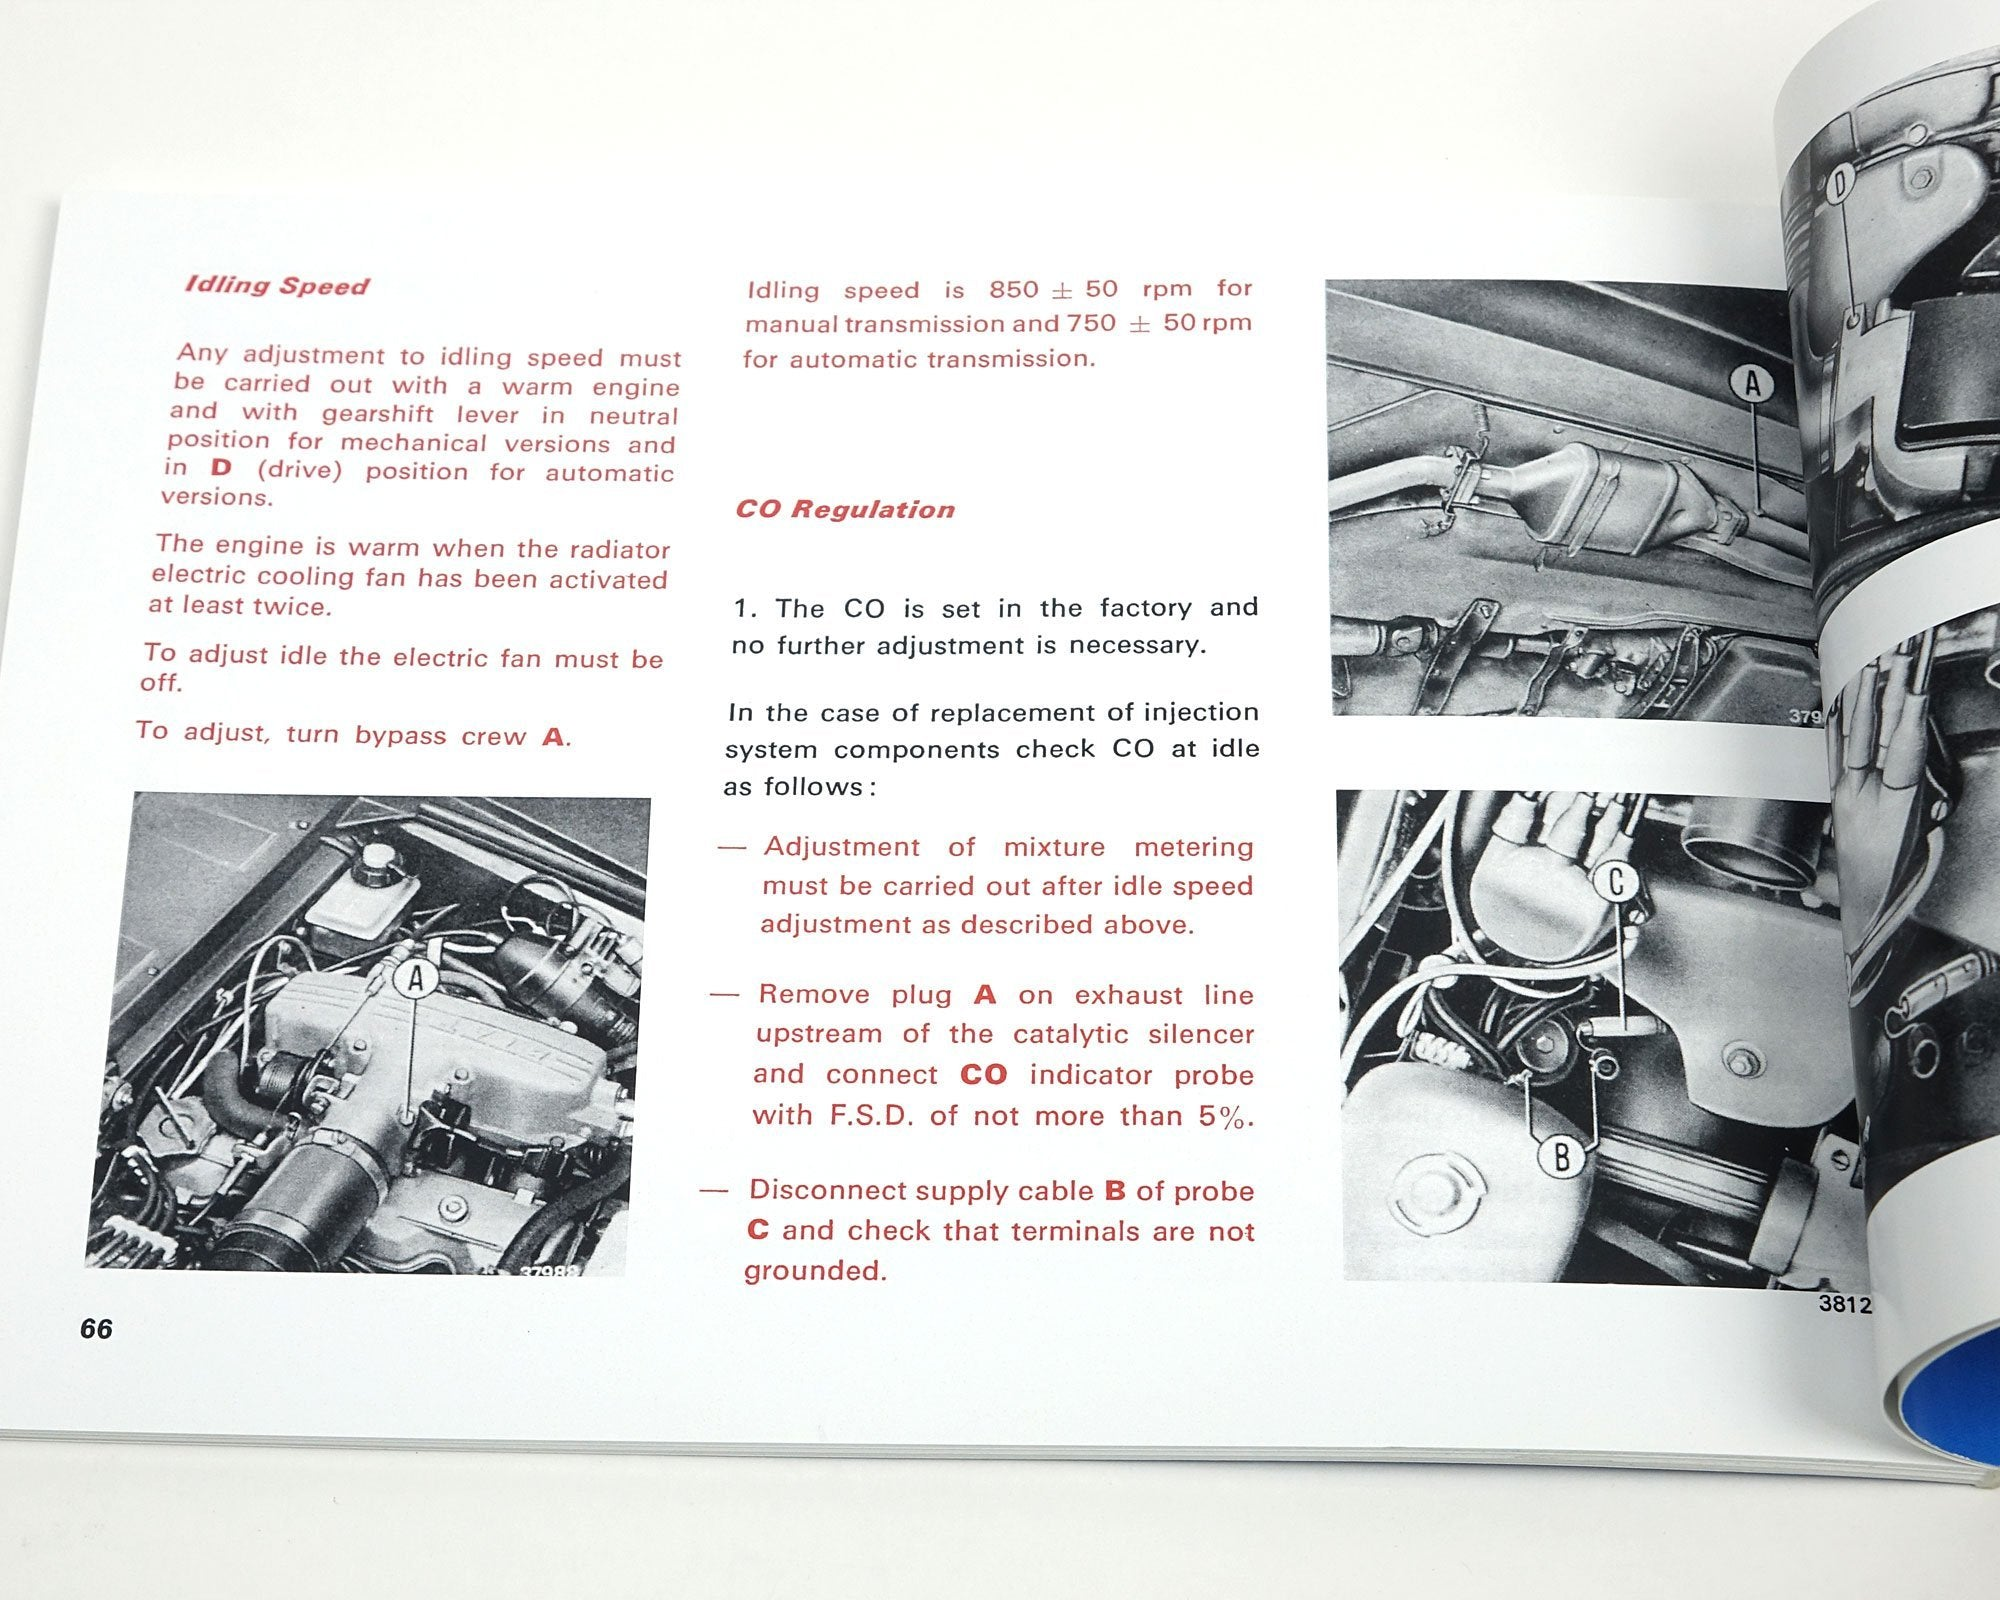 ... FIAT 124 Spider 1980 Owners Manual-1966-85 Classic Spider-[Auto Ricambi  ...